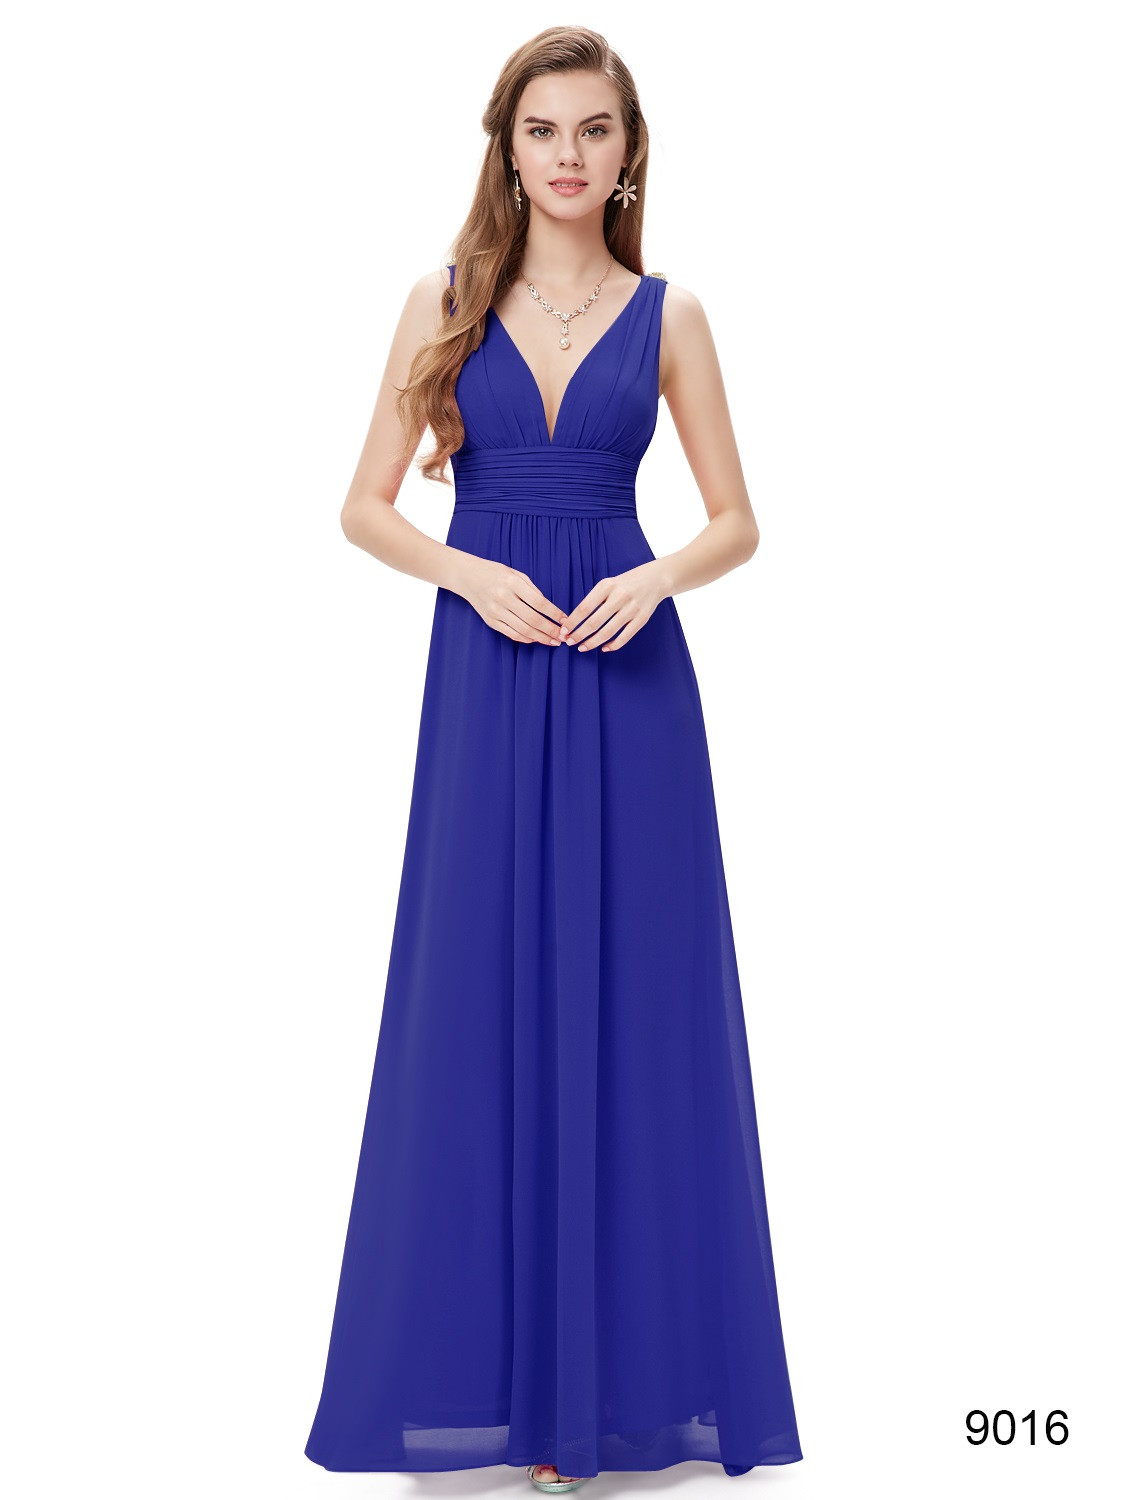 Blue Double V Elegant Chiffon Bridesmaid Dress